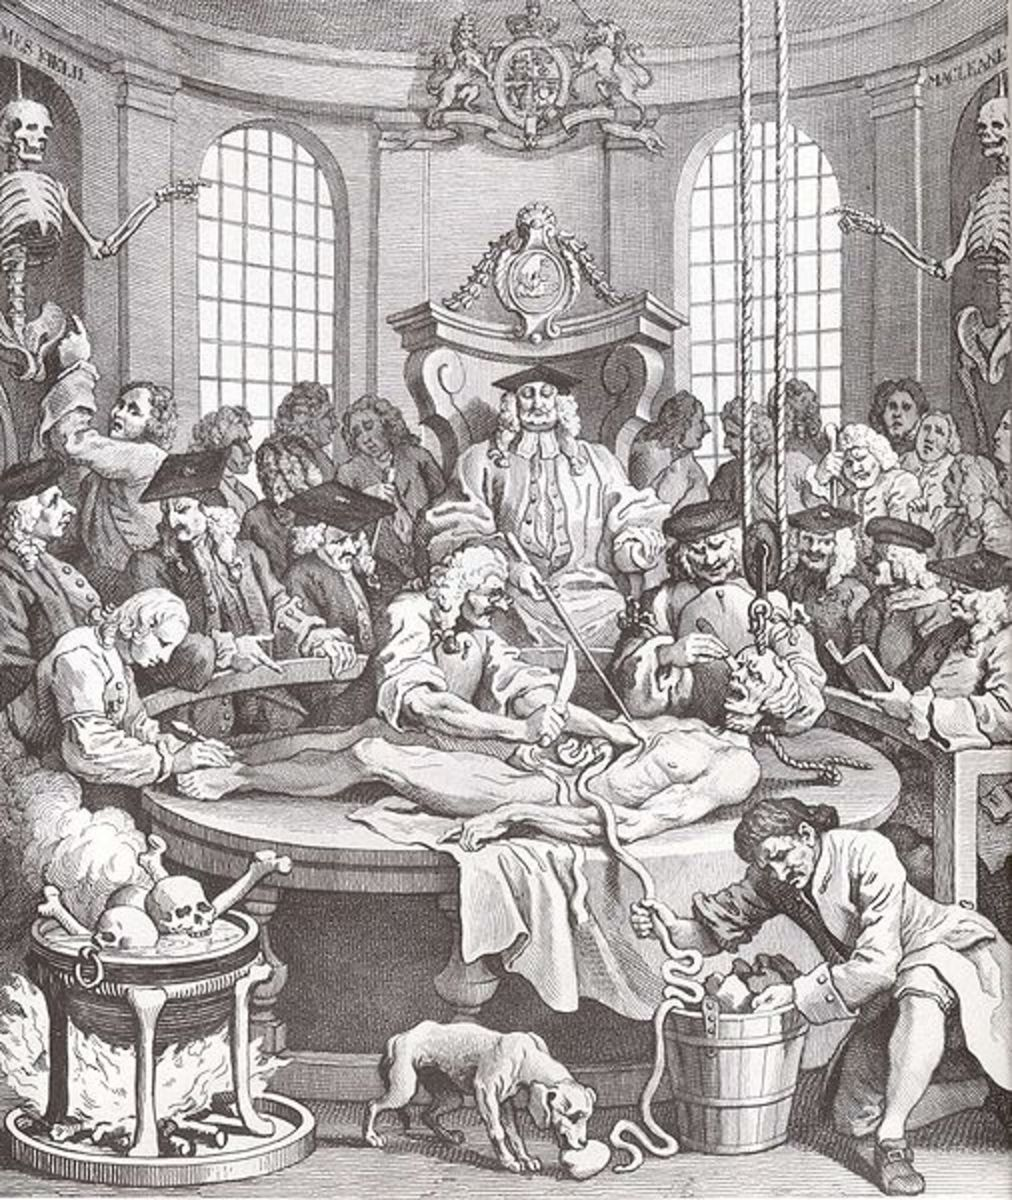 William Hogarth's The Reward of Cruelty. In the 18th century the bodies of criminals were dissected and used for medical research. Photo courtesy of wikimedia.org.